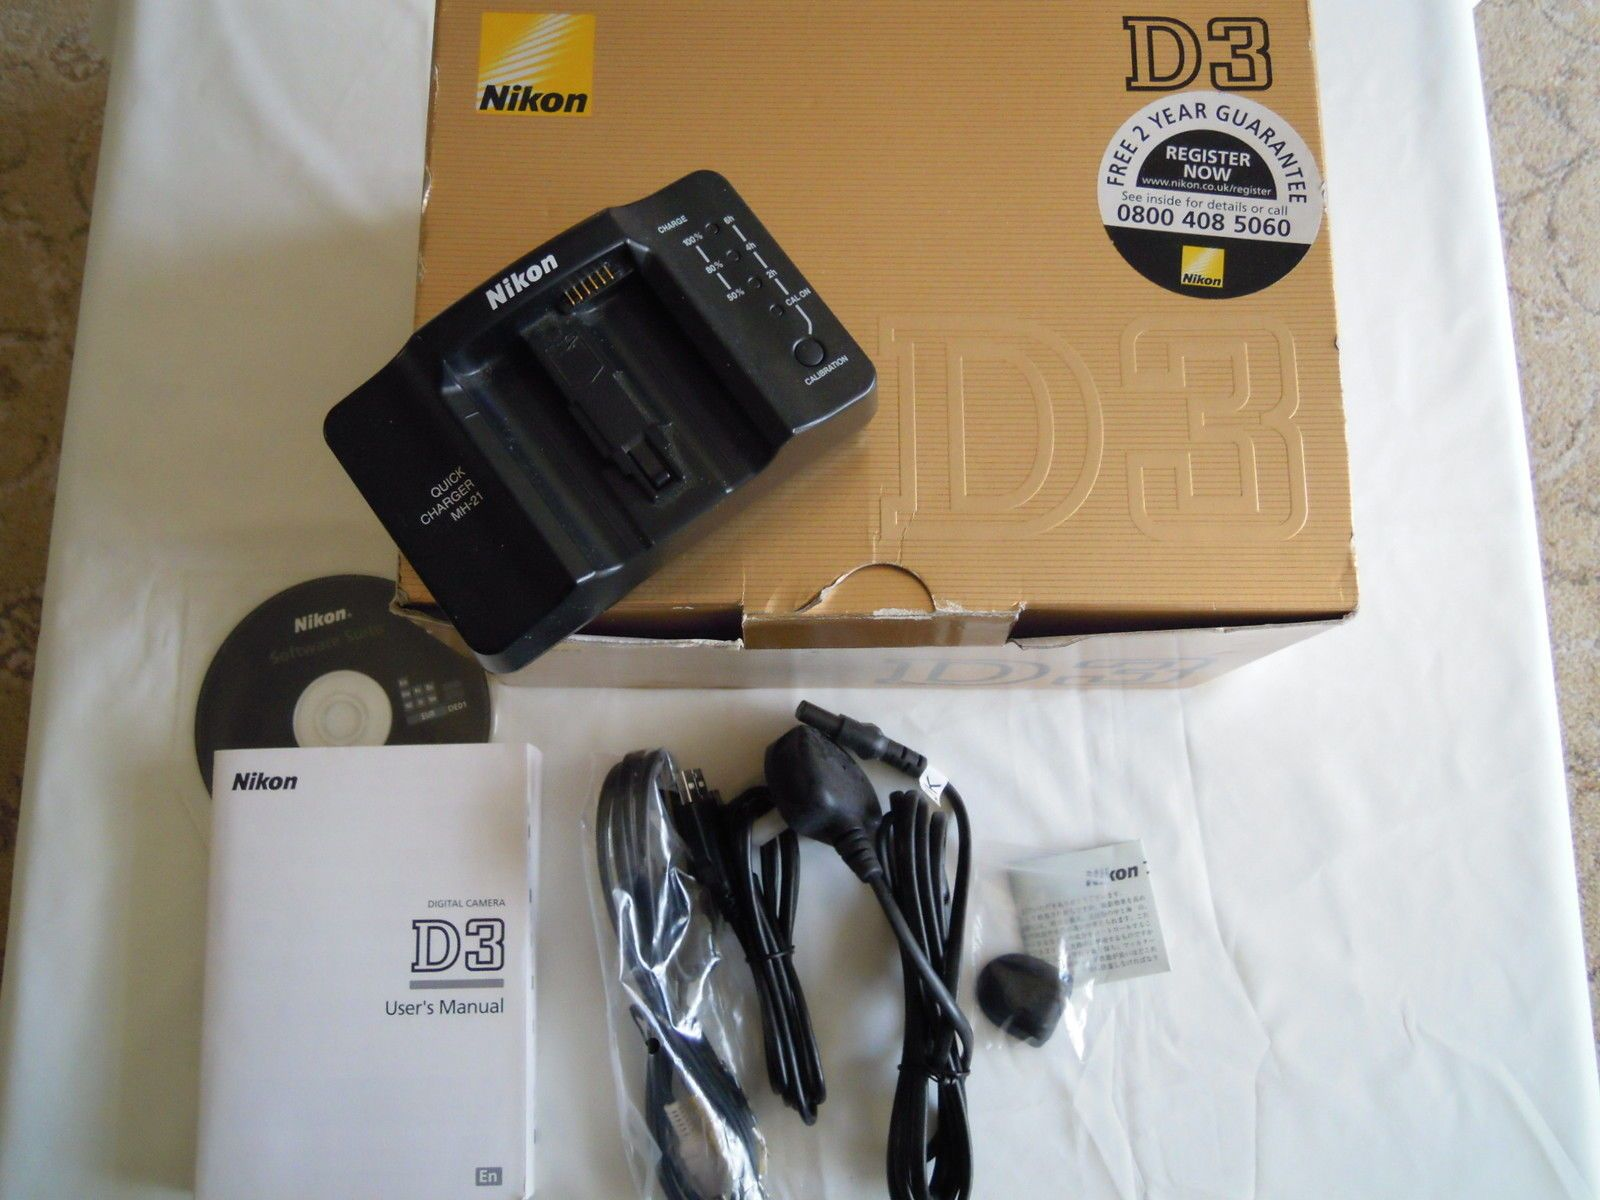 Sold: nikon d2x as new fm forums.